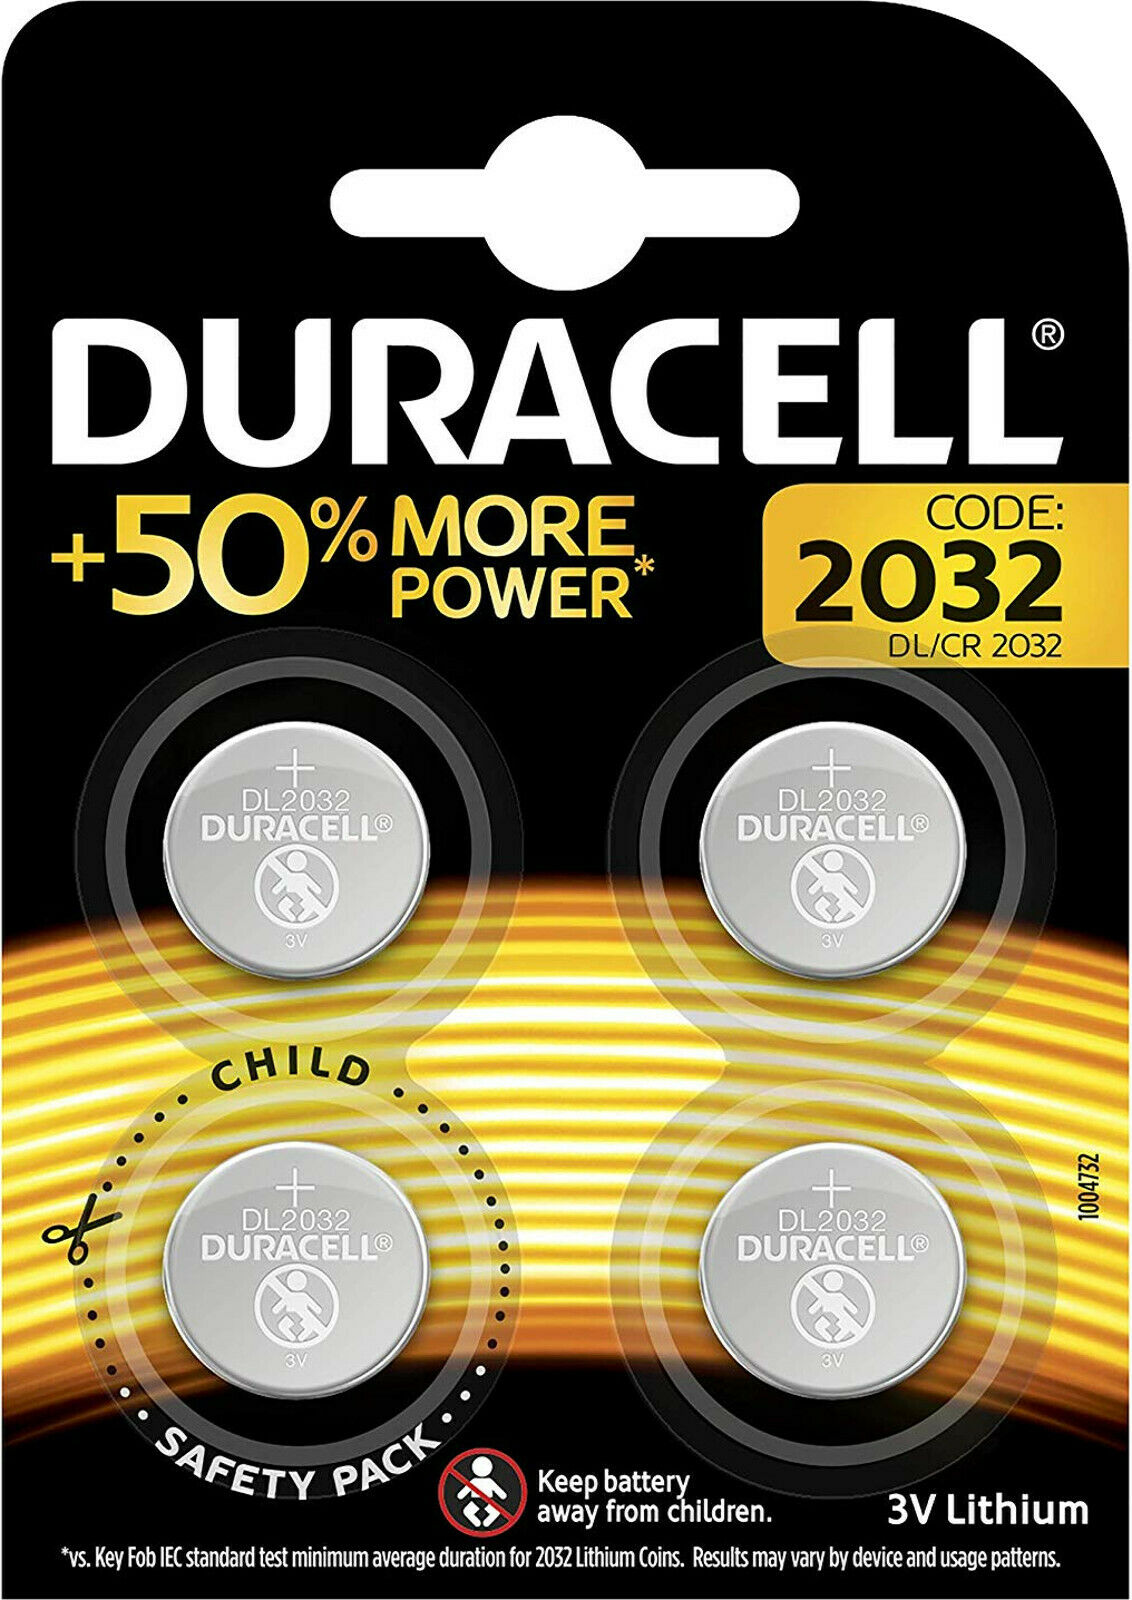 5x Duracell 2032 Lithium 3V Button Cell 4 he Blister CR2032 DL2032